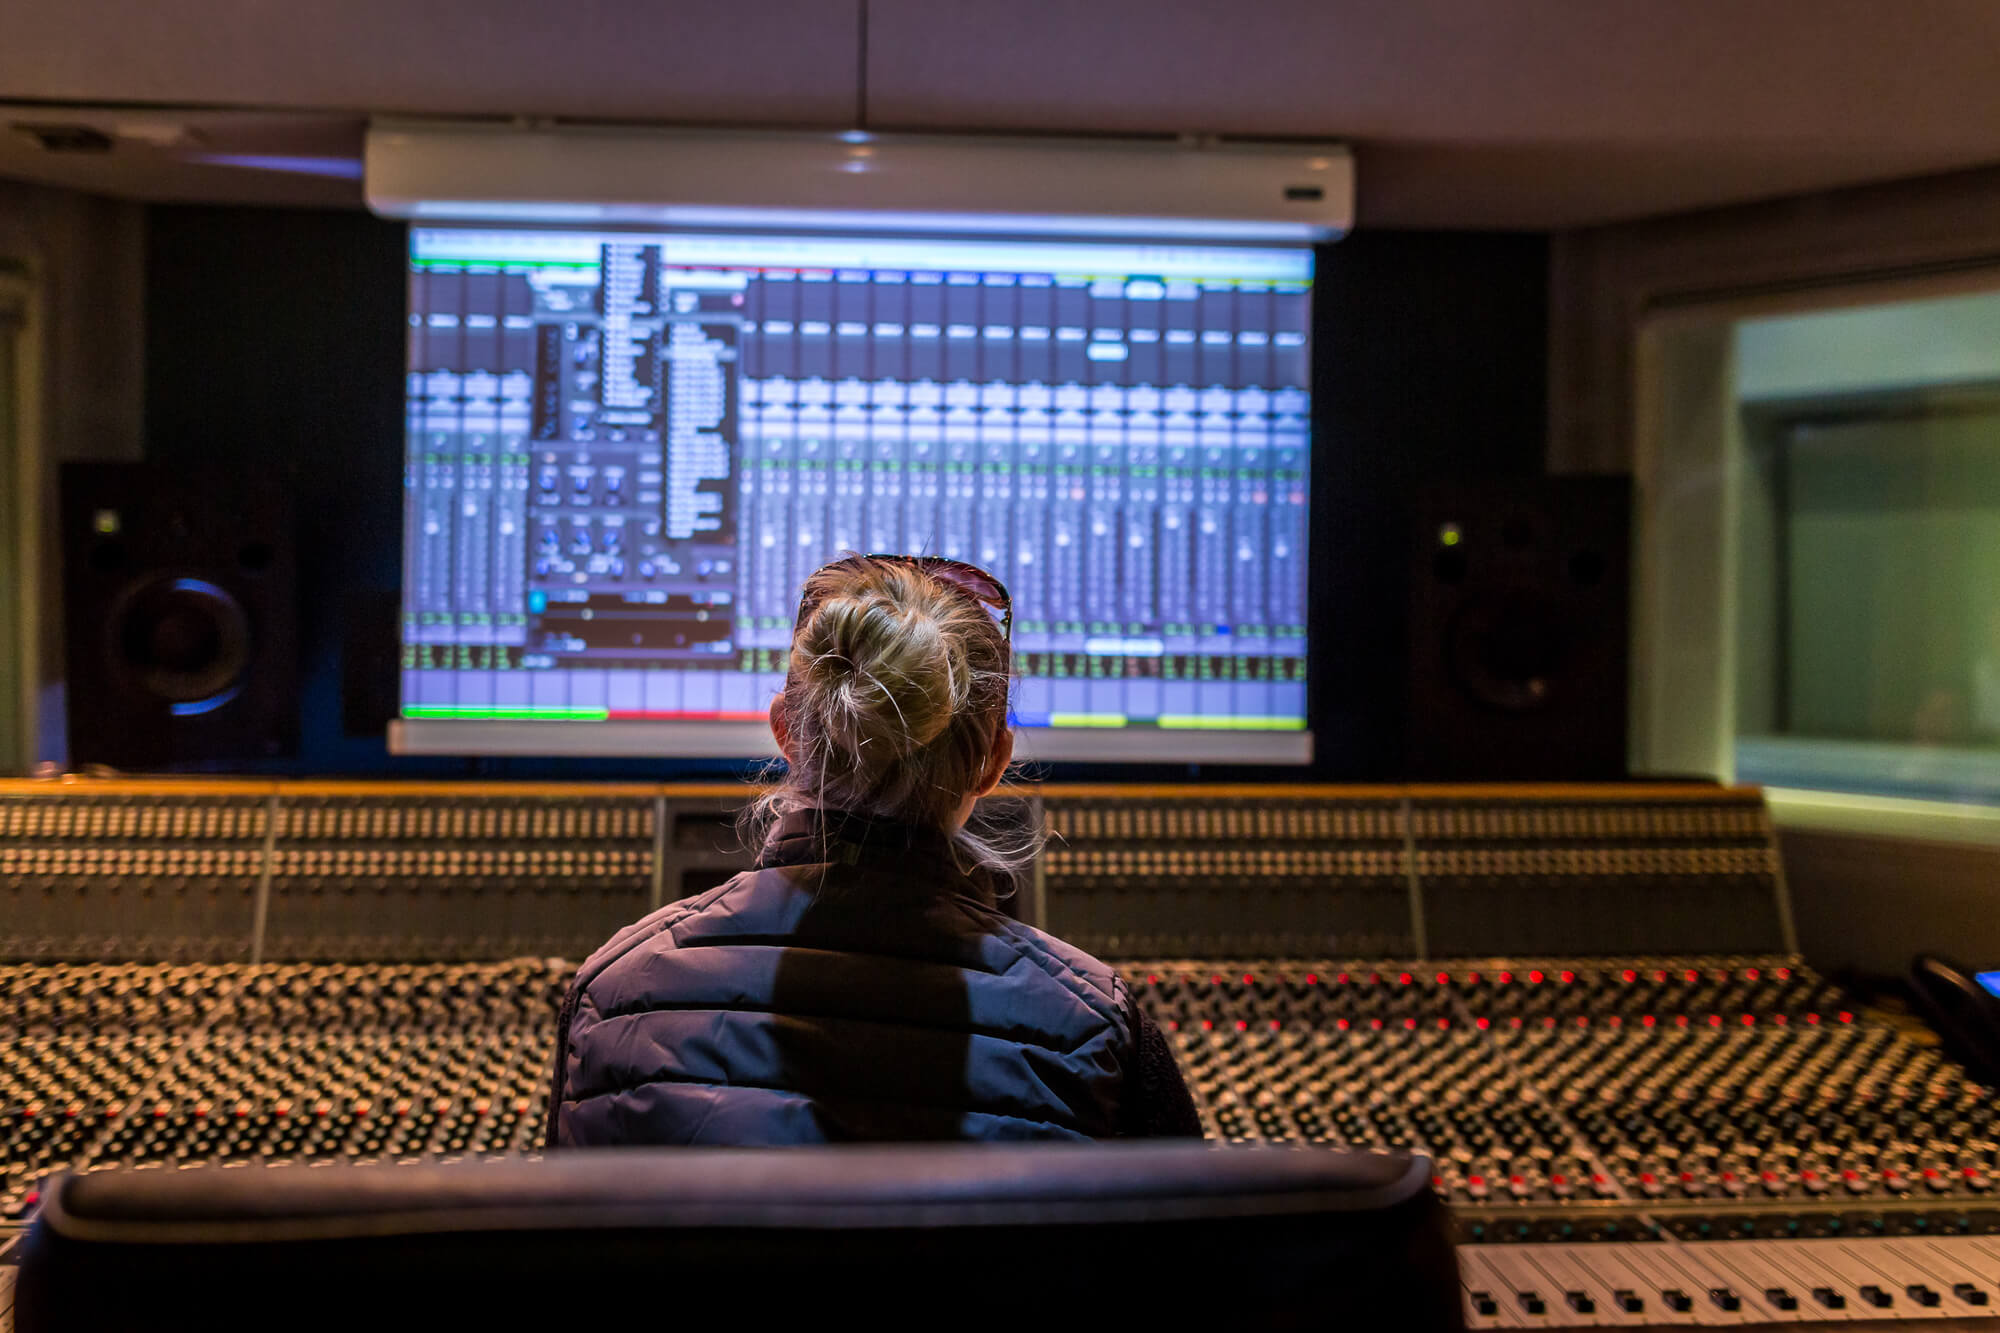 A student behind the mixing desk in the music studio